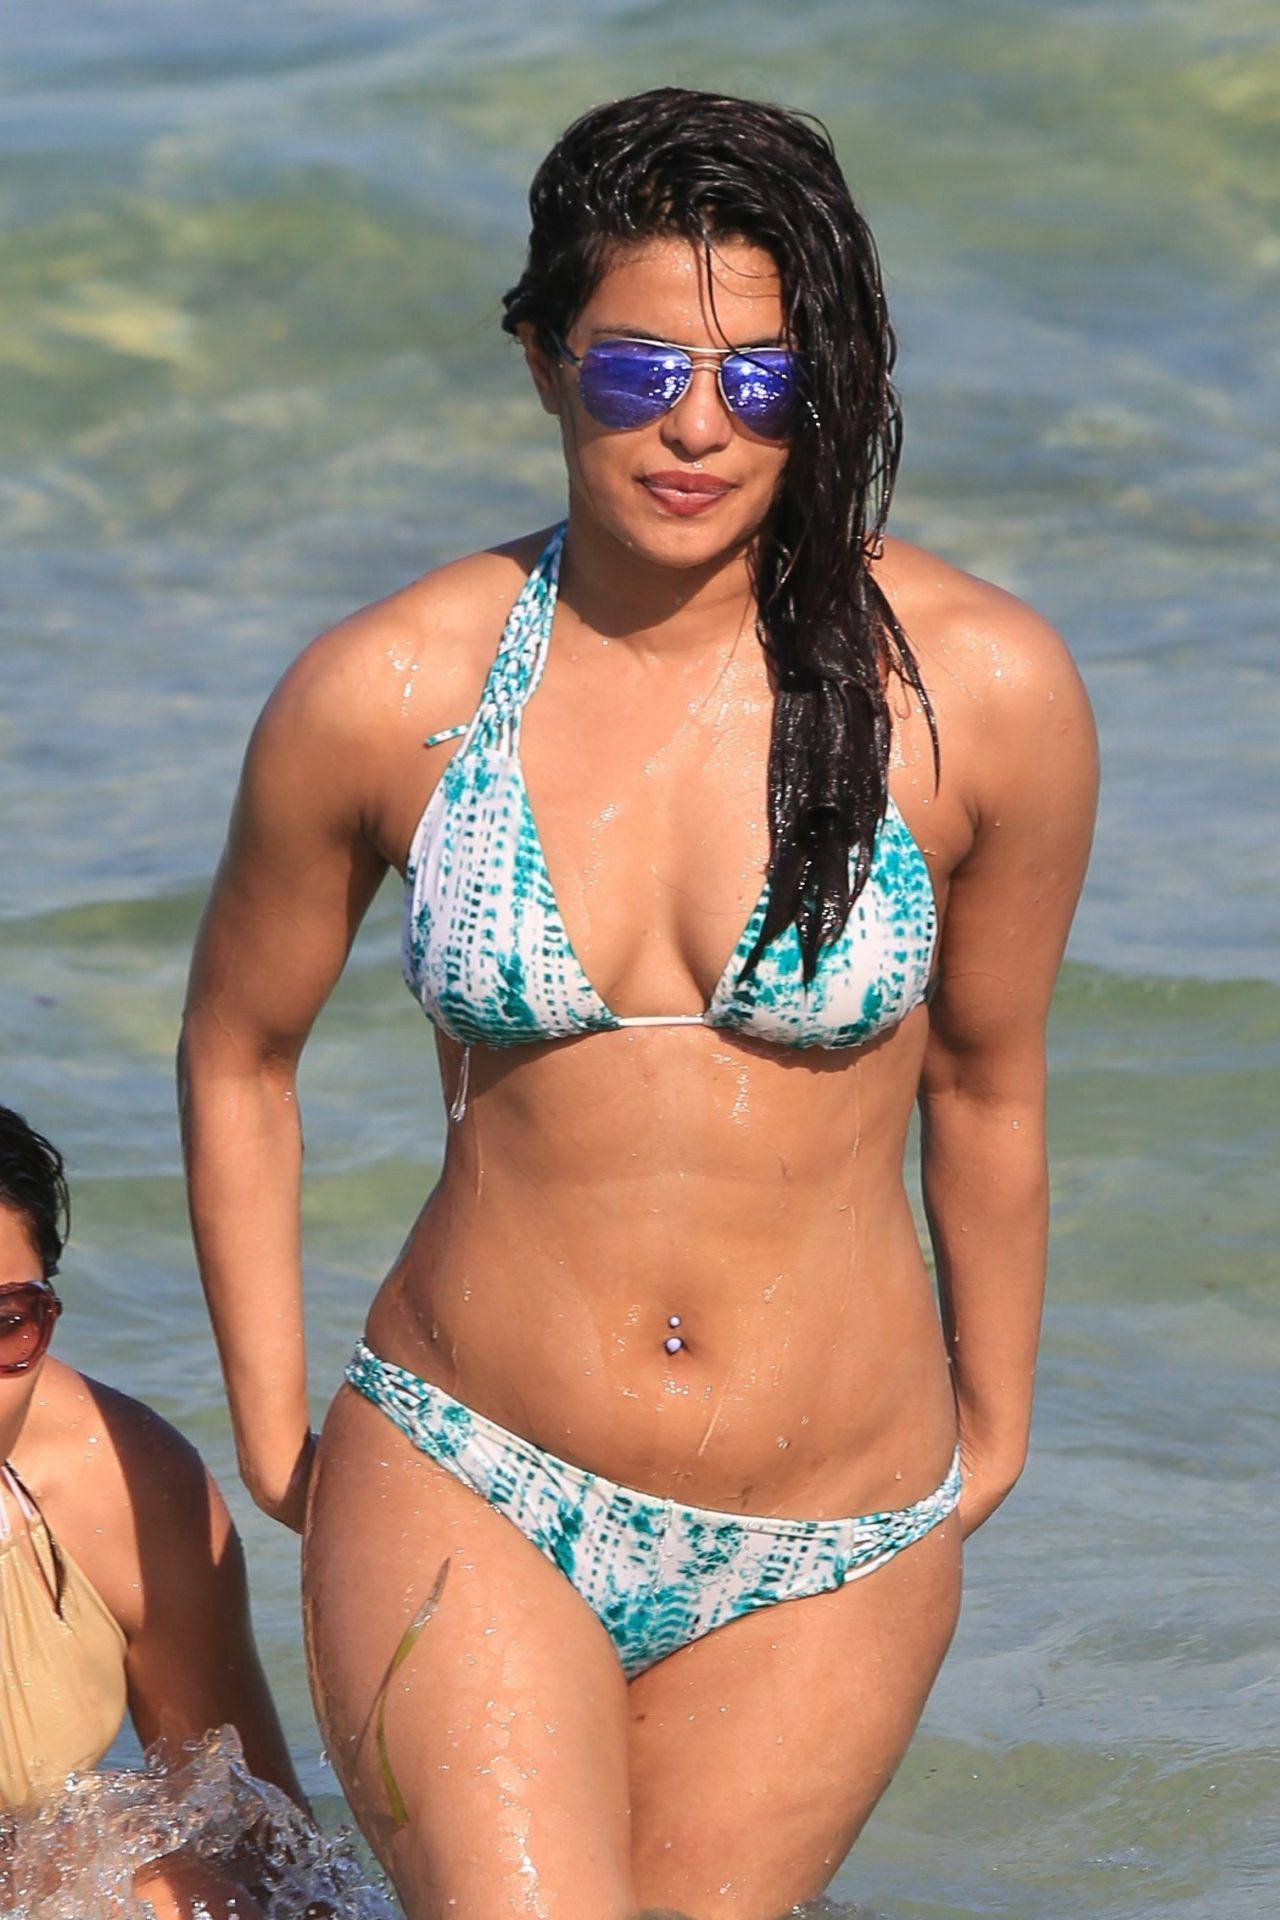 Priyanka Chopra In Bikini On The Beaches In Miami, Fl 05 -5297